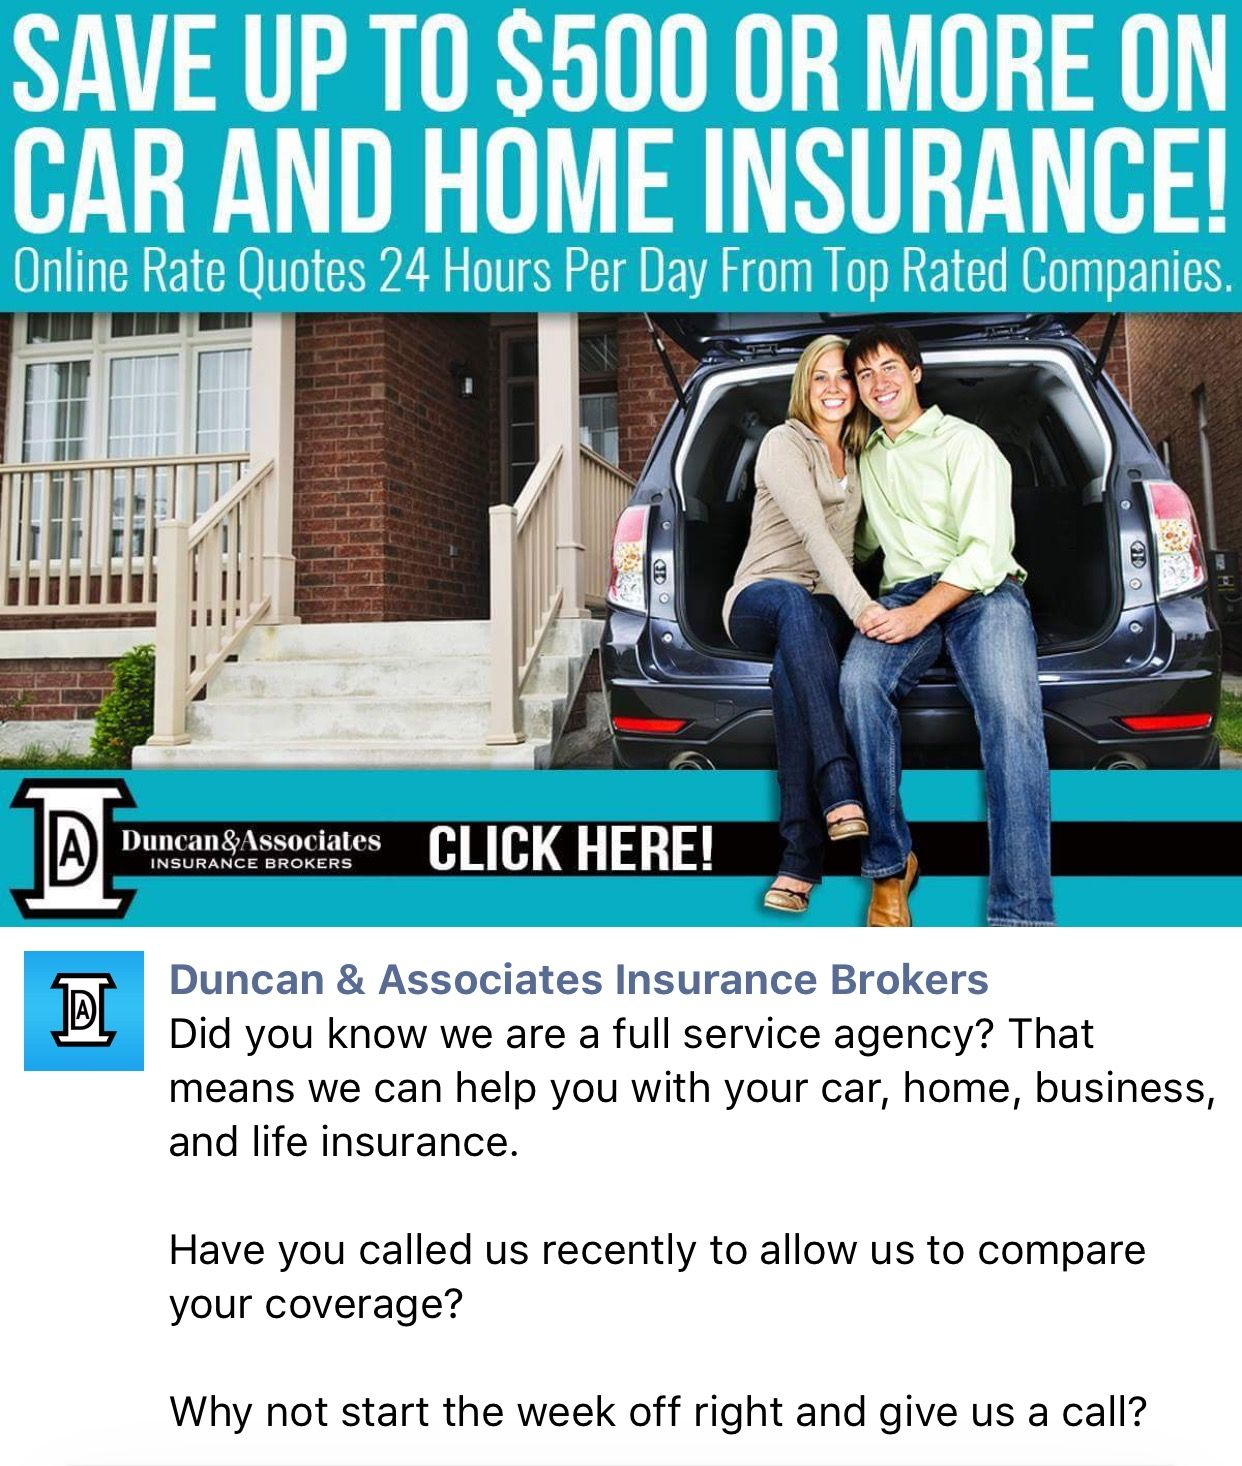 Call Me For Your Insurance Needs Home Insurance Insurance